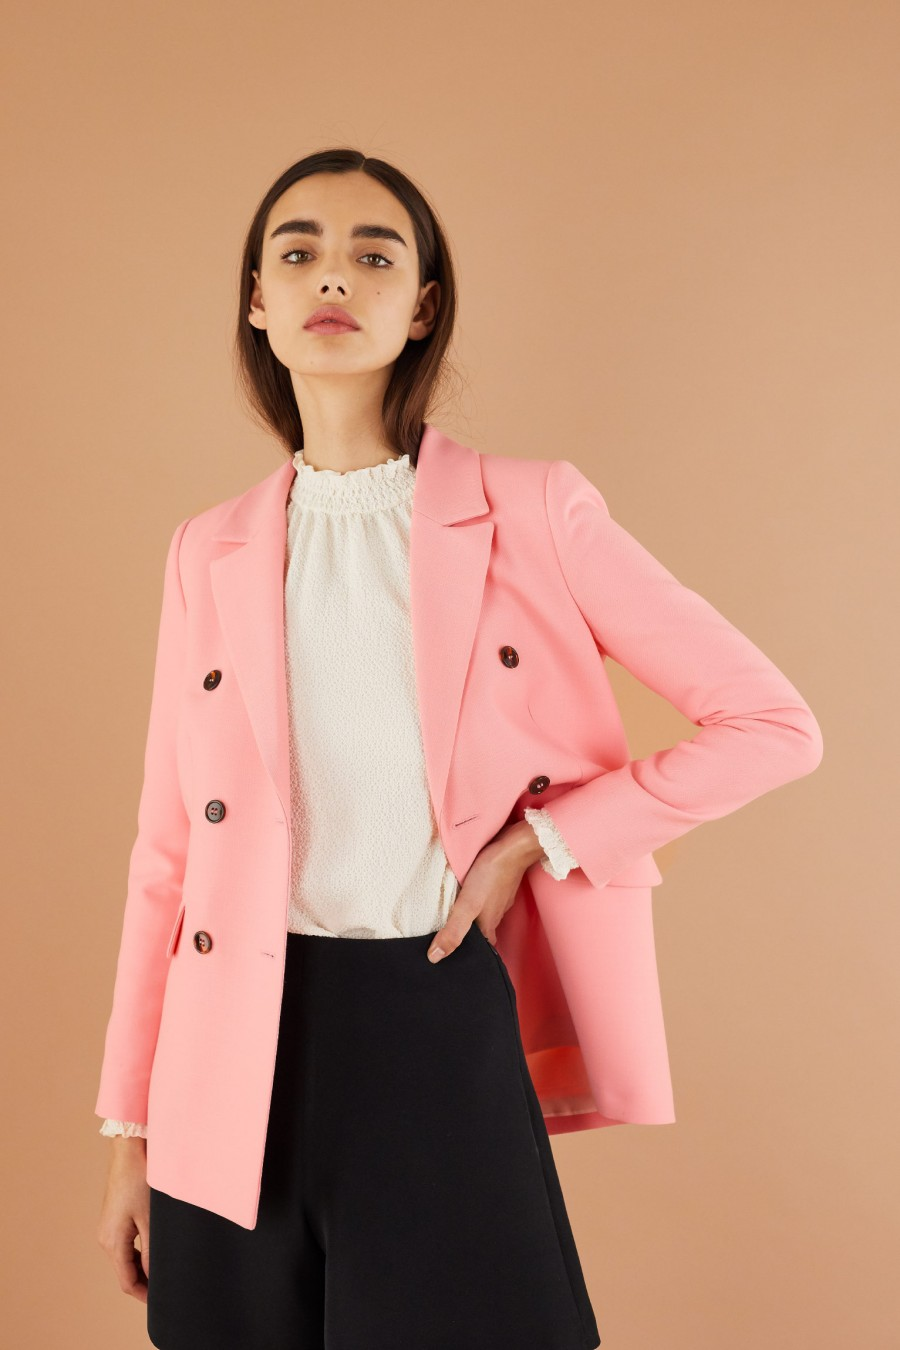 pink jacket with black buttons